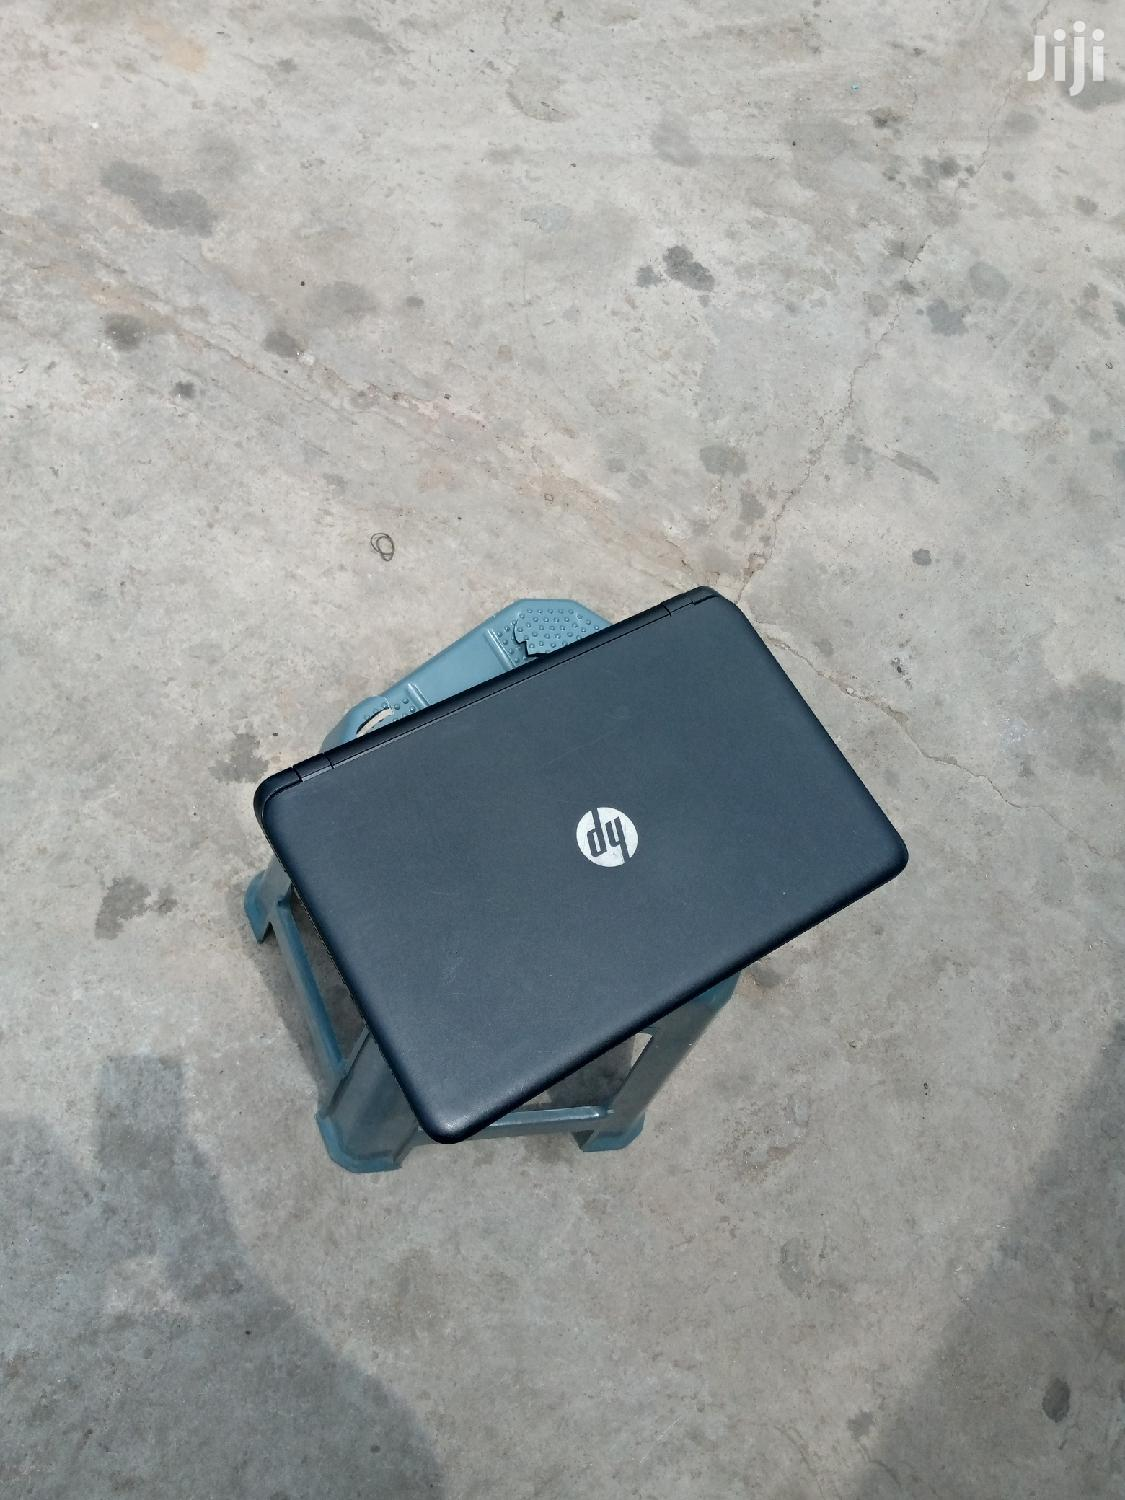 Laptop HP 15-ra003nia 4GB Intel Celeron HDD 500GB | Laptops & Computers for sale in Kokomlemle, Greater Accra, Ghana